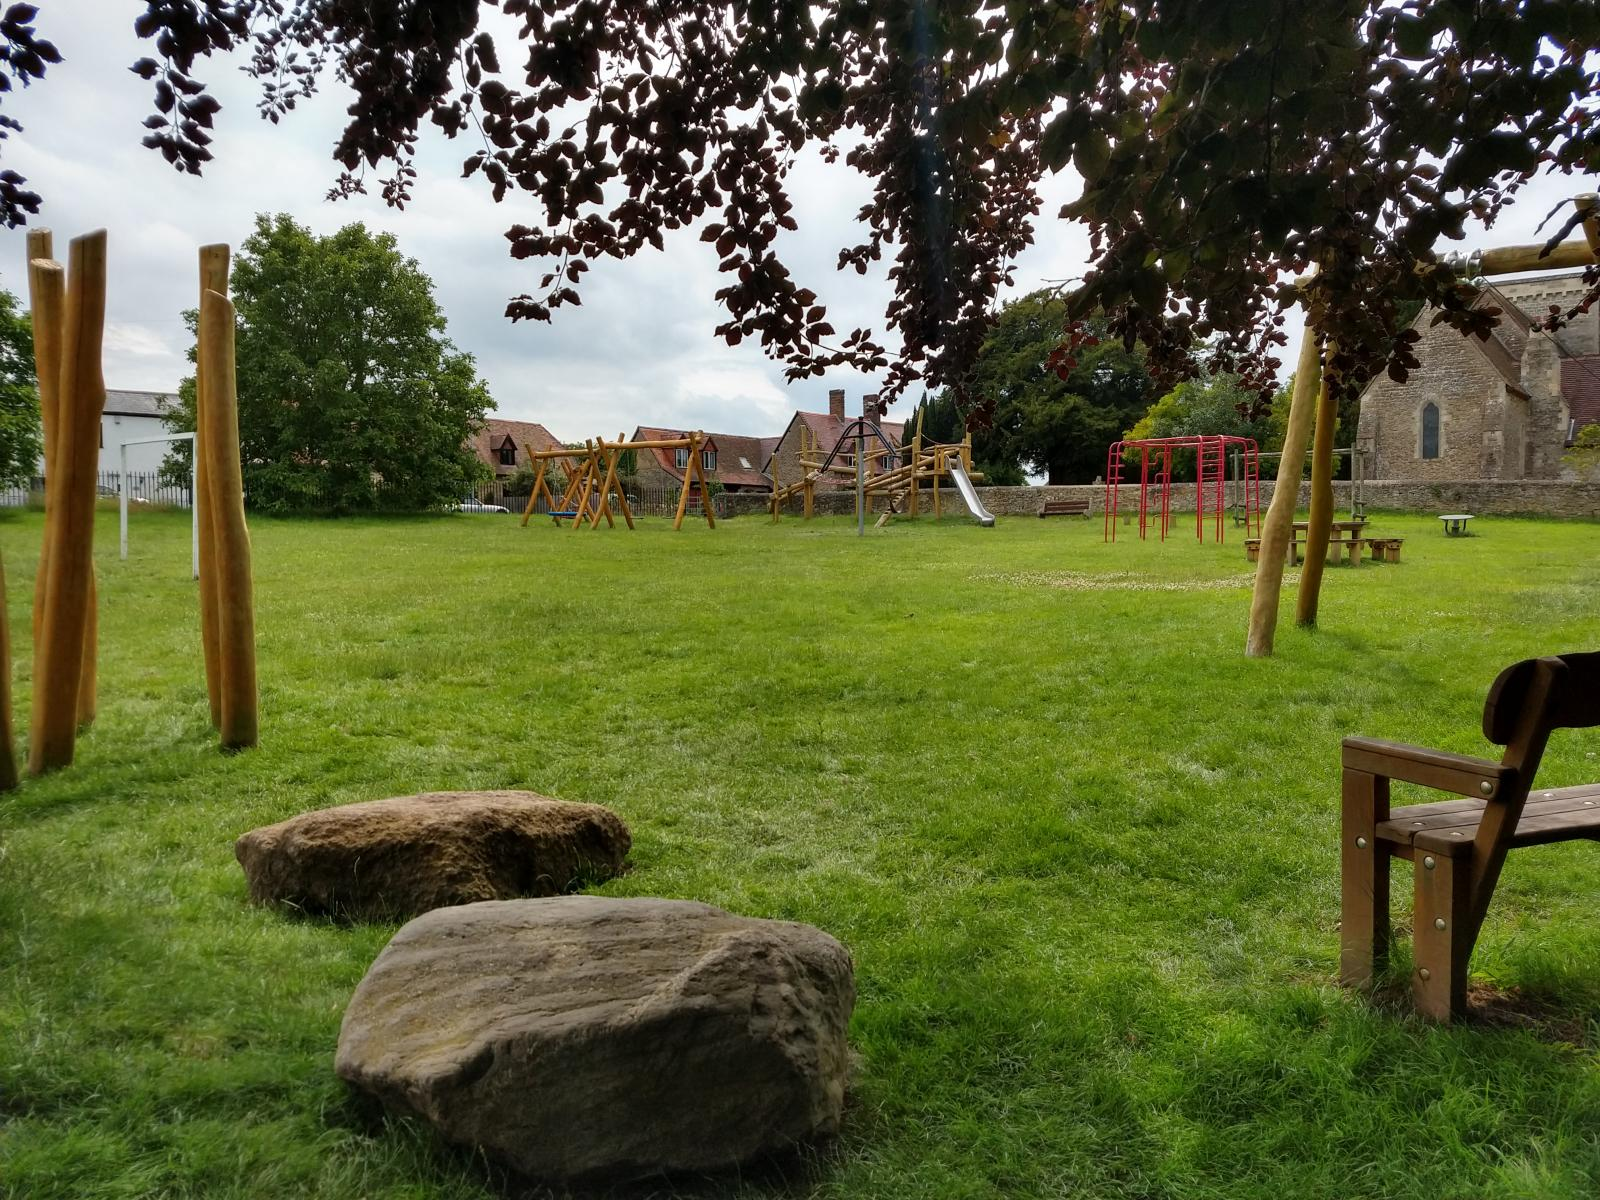 Sandford-on-Thames Village Playground